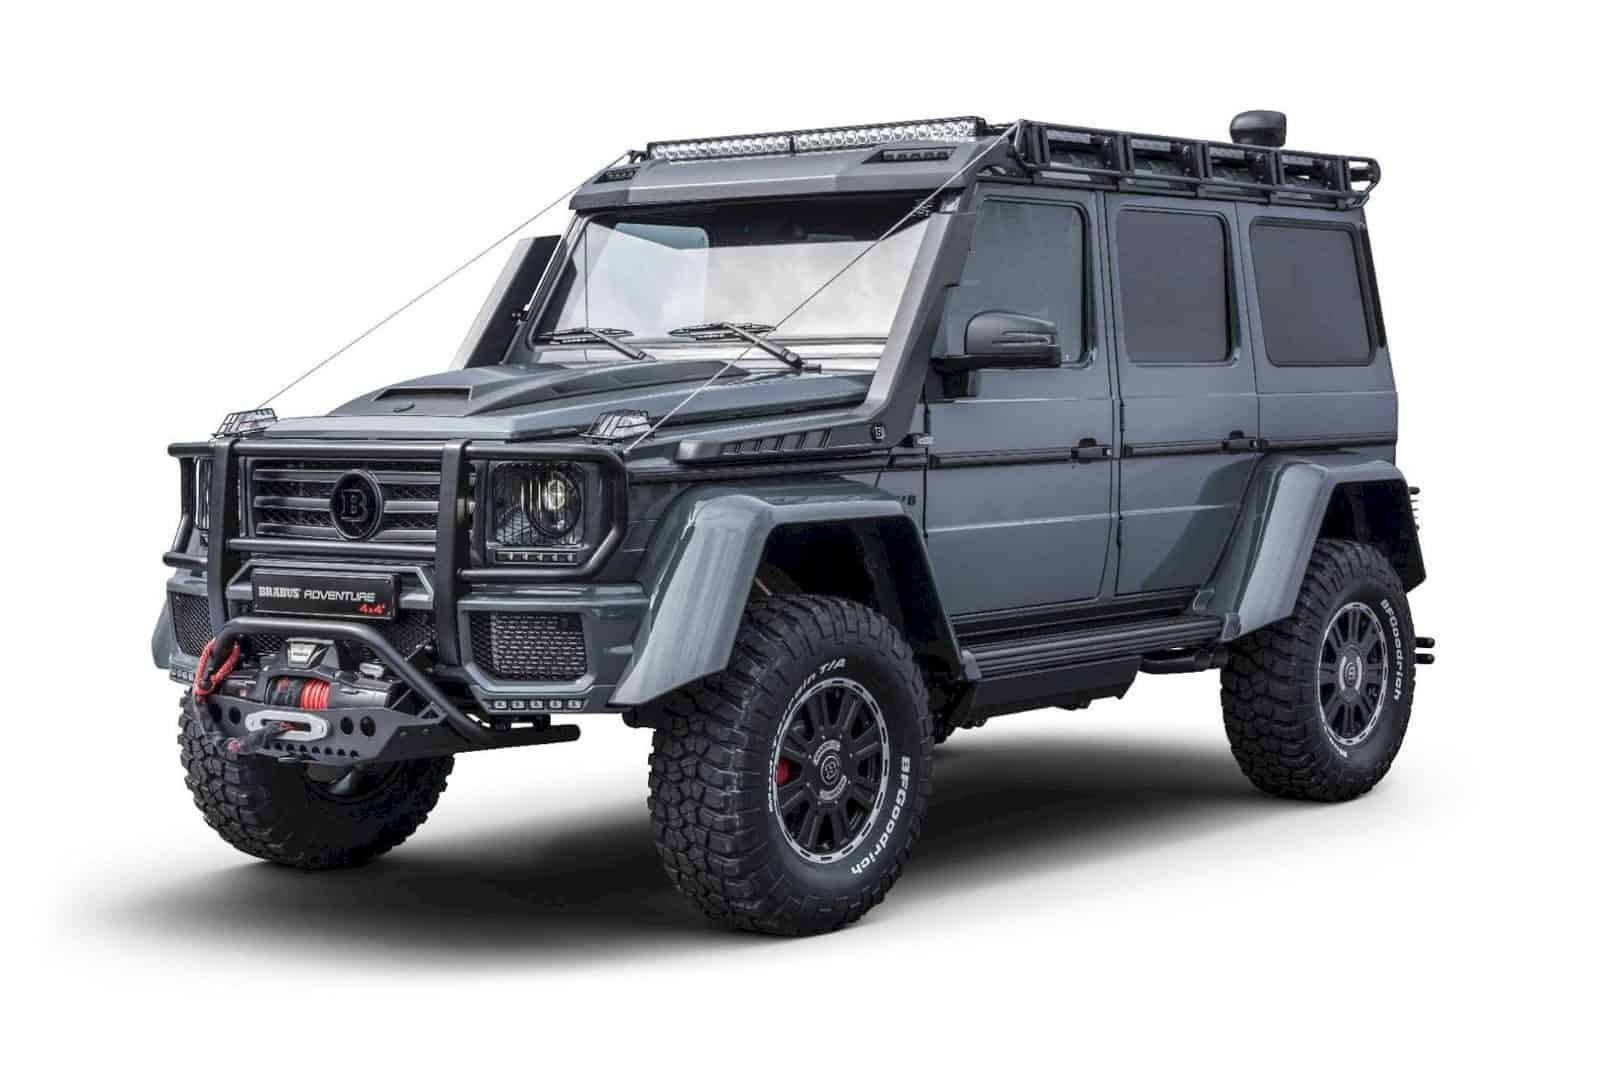 BRABUS Adventure 4x4² - The Best in the Class